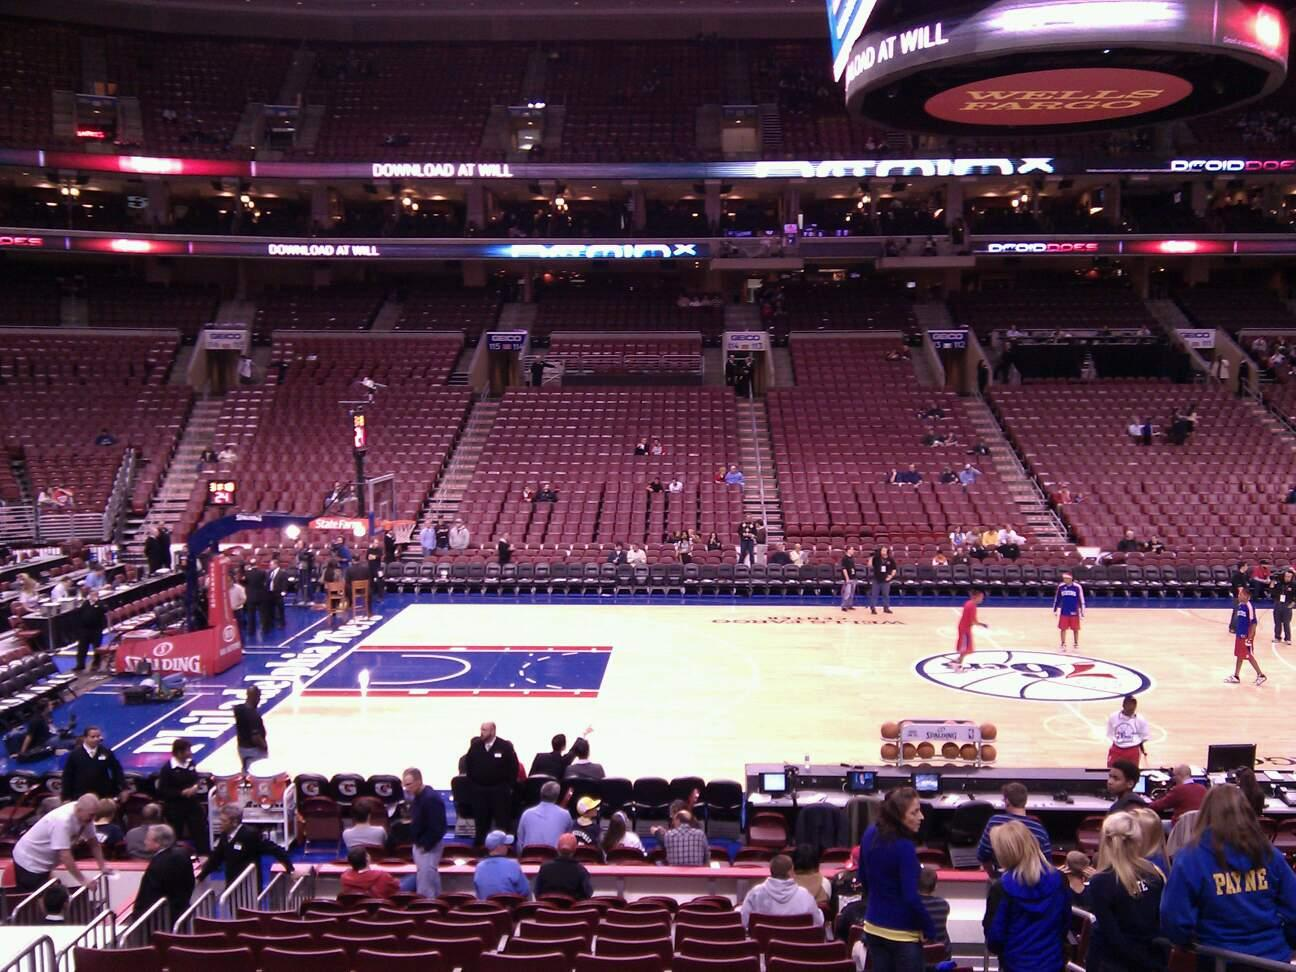 Wells Fargo Center Section 124 Row 15 Seat 17